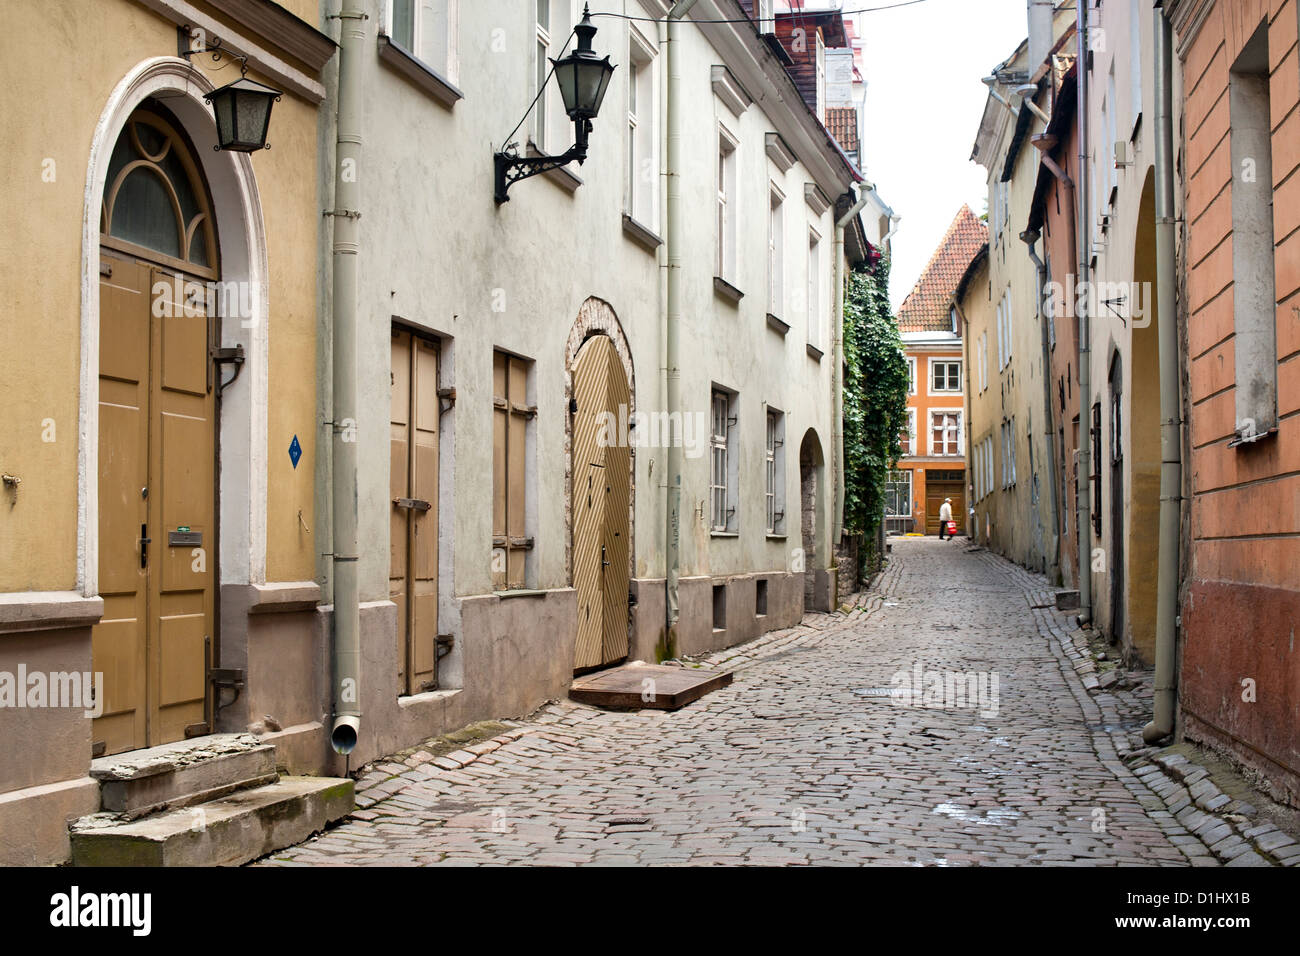 A street in the old town in Tallinn, the capital of Estonia. - Stock Image